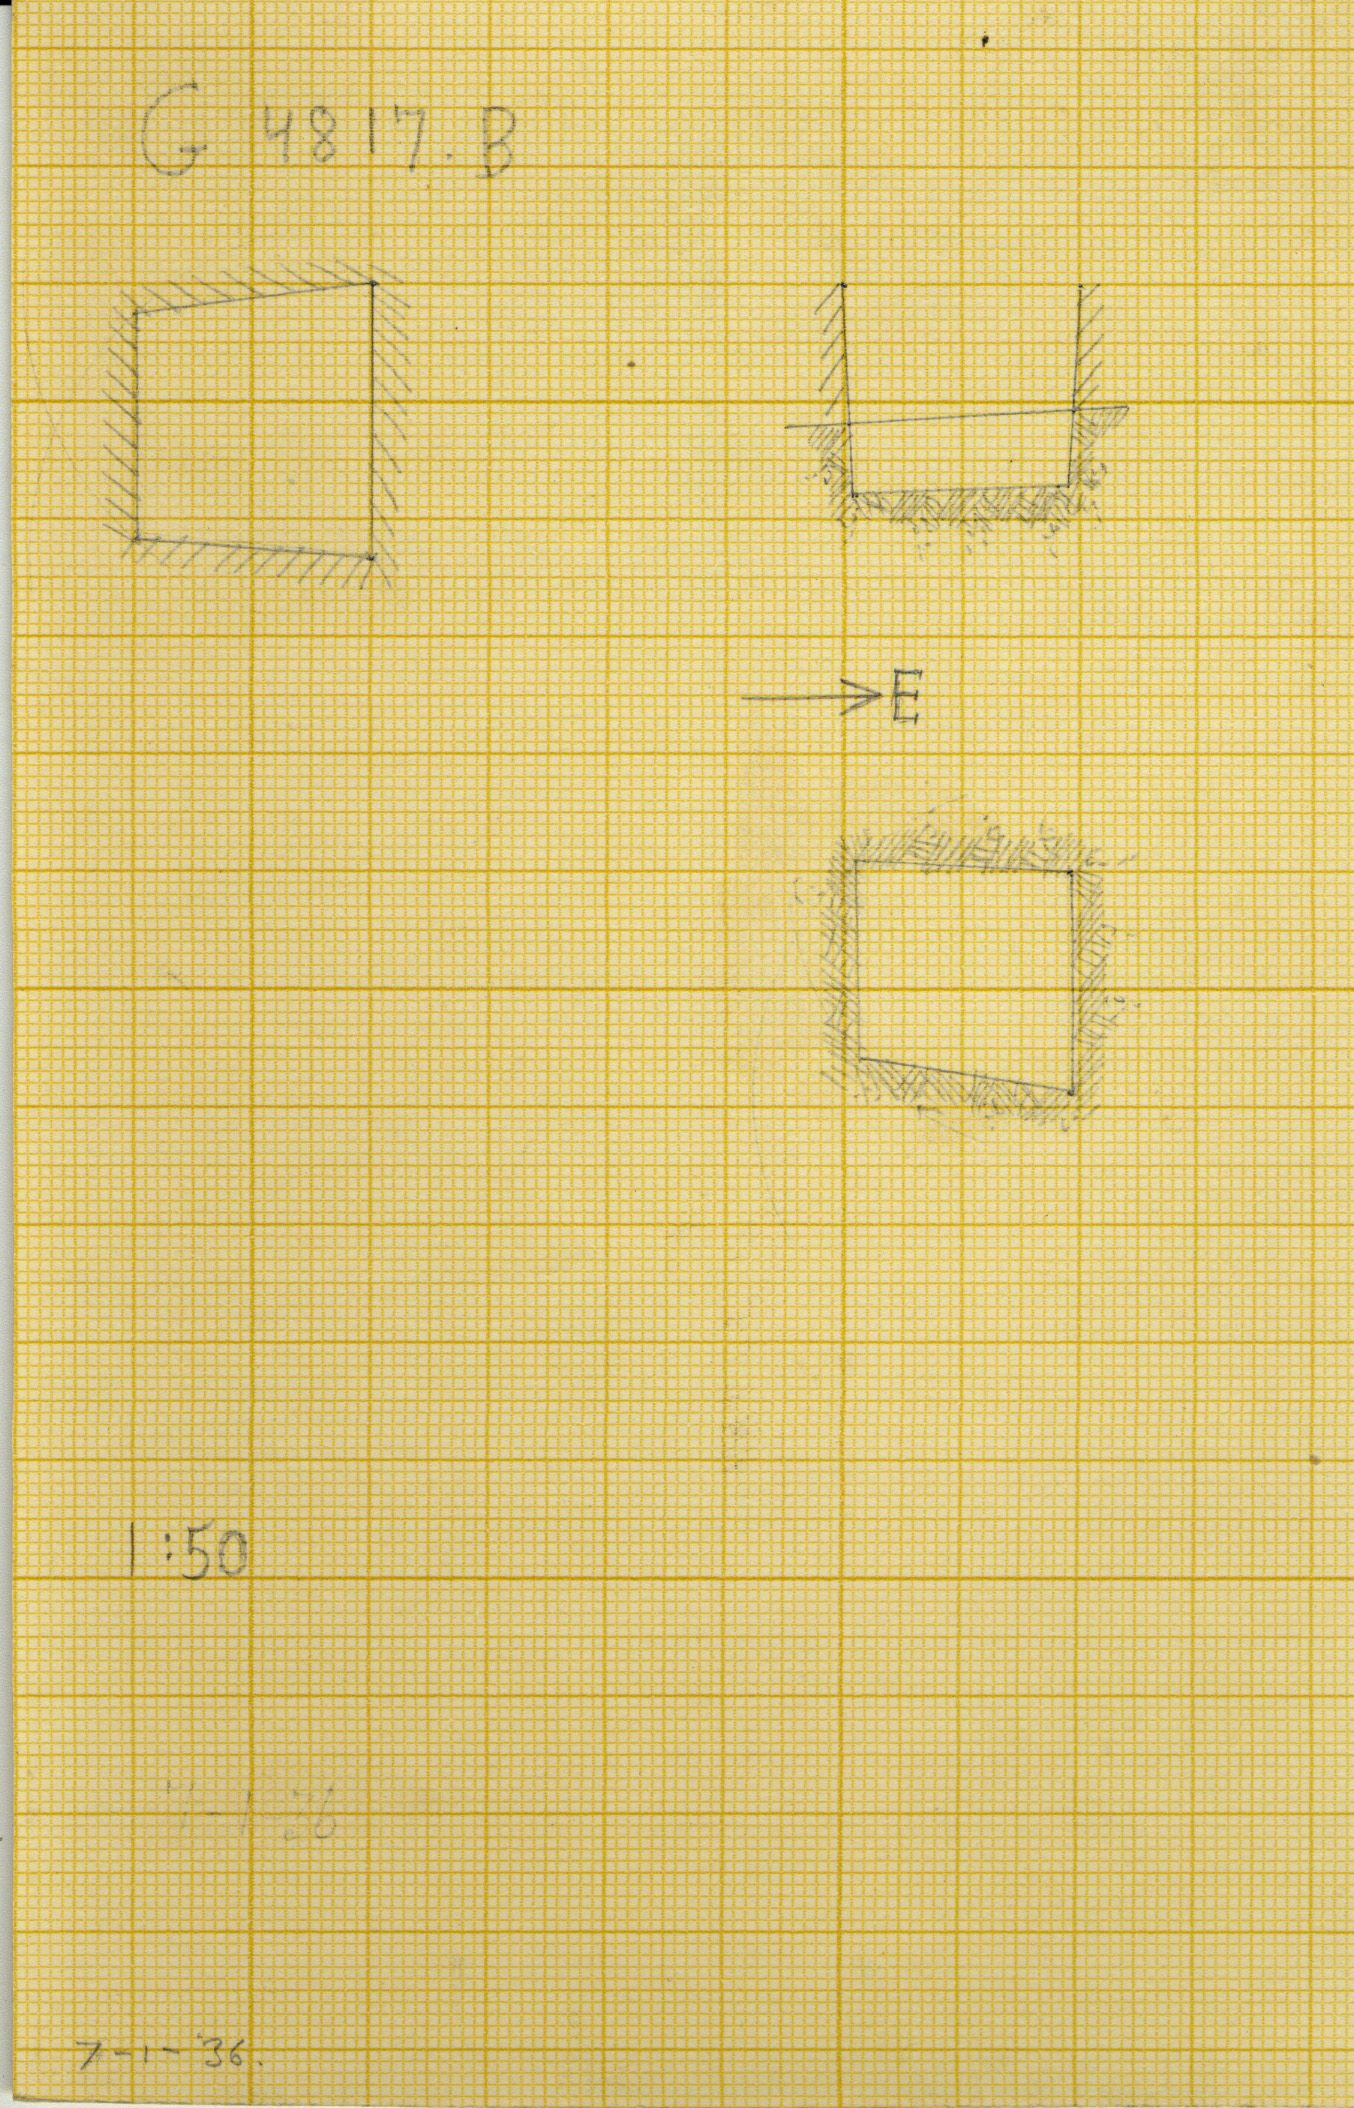 Maps and plans: G 4817, Shaft B